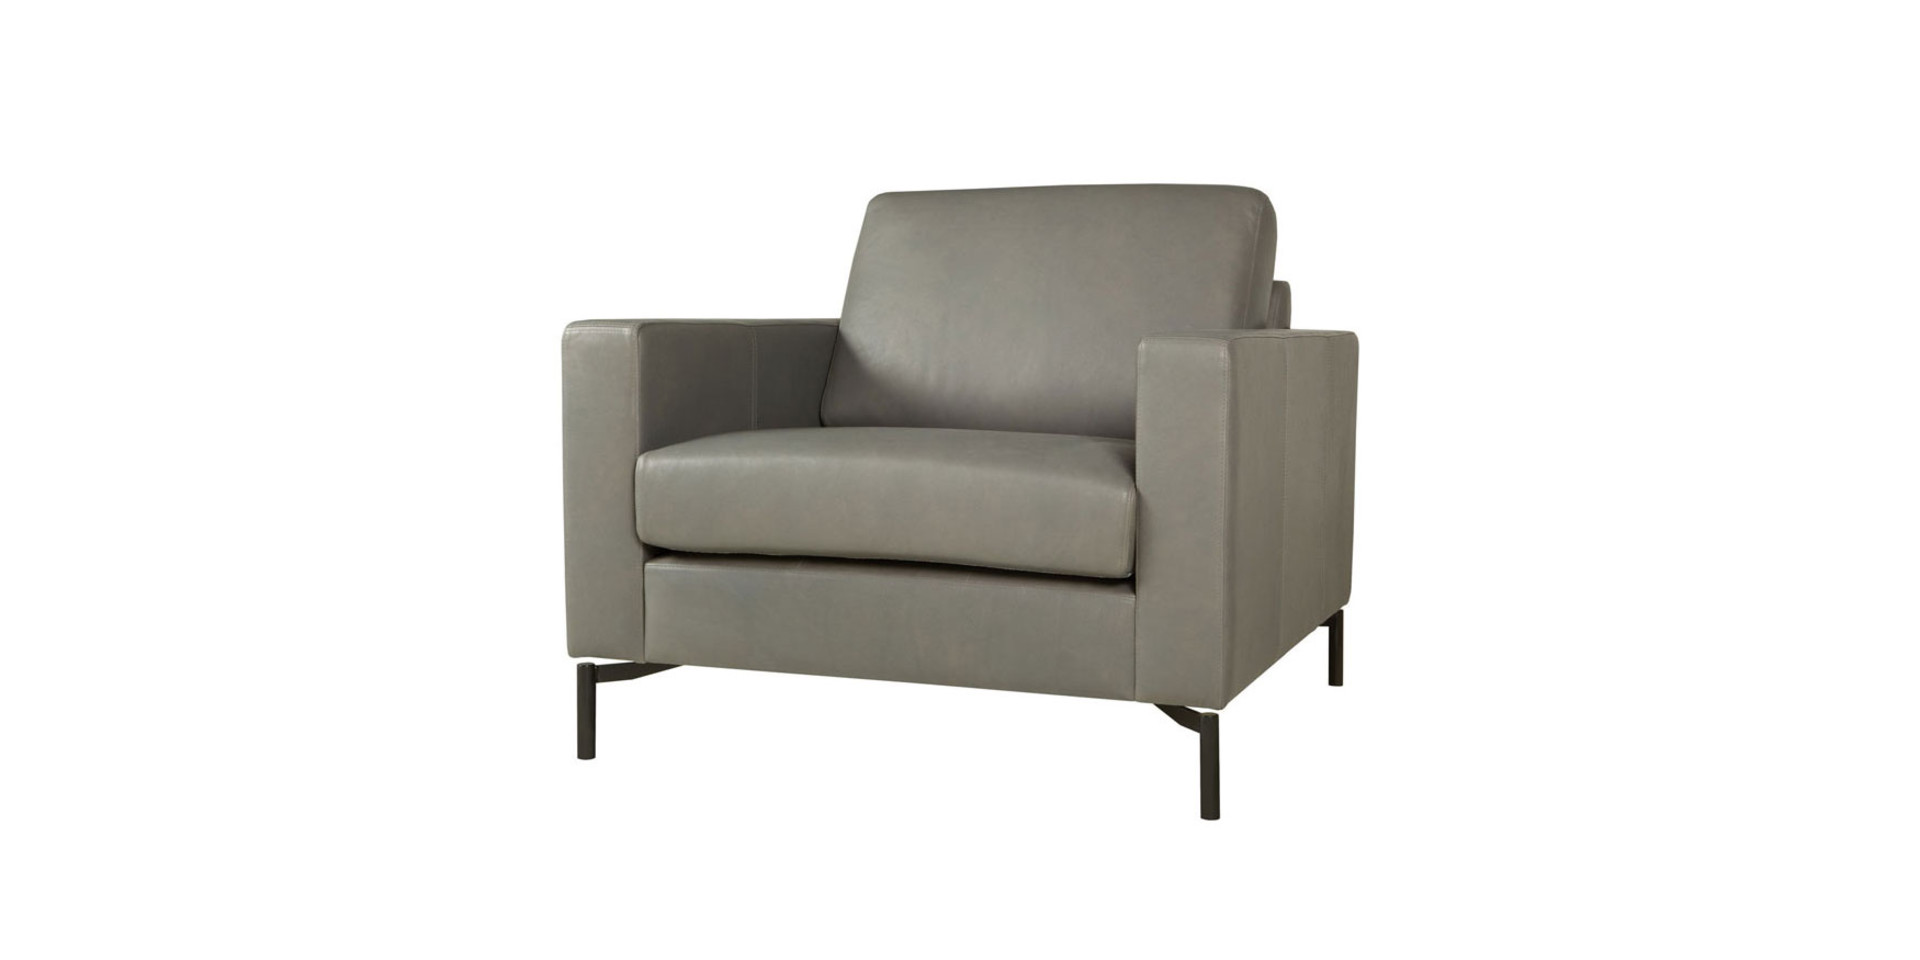 sits-quattro-fauteuil-prowadnice